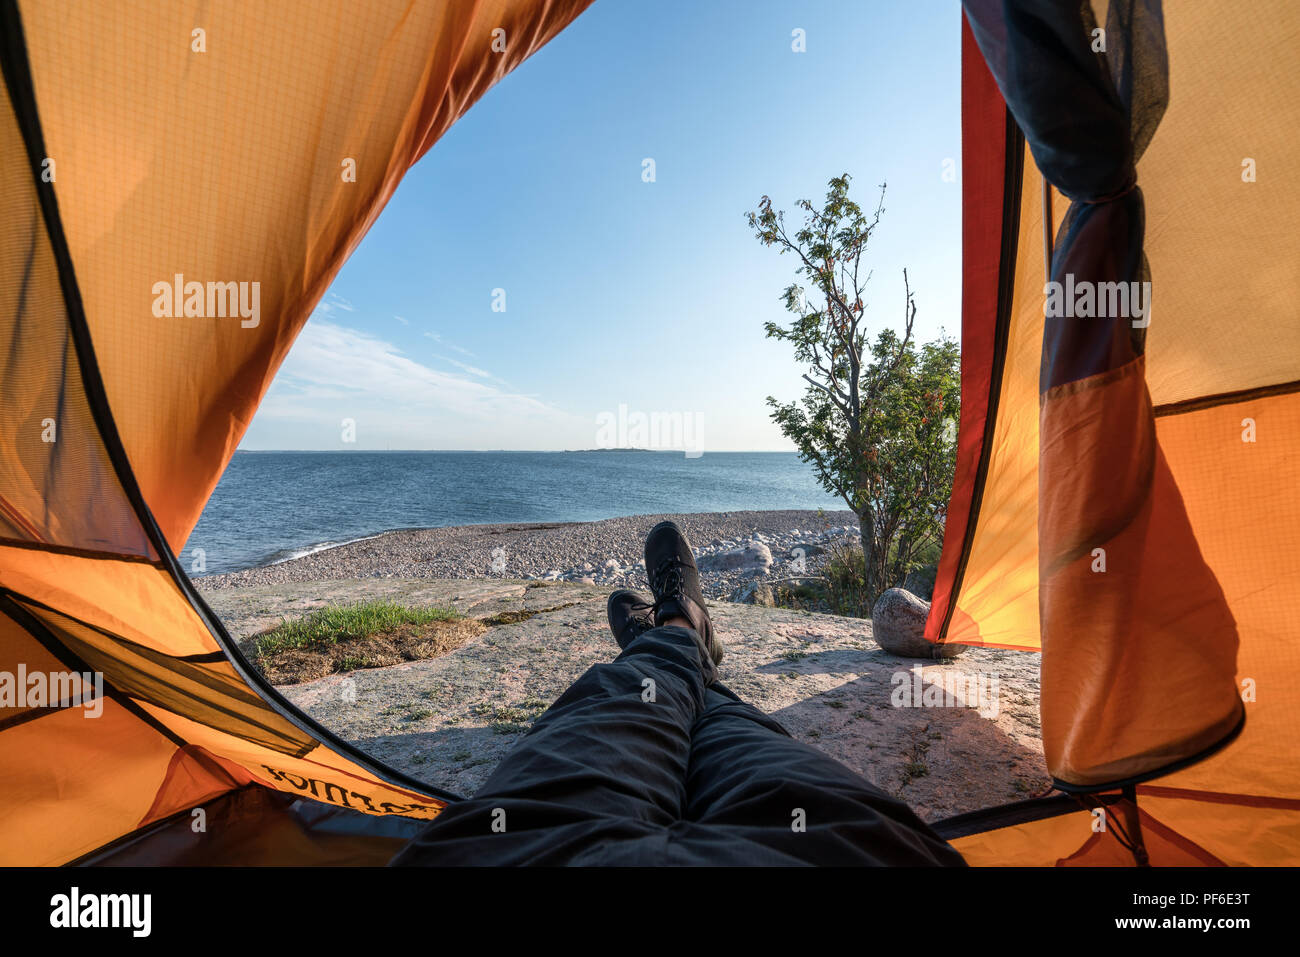 Relaxing and enjoying the views at Örskär island, Kirkkonummi, Finland, Europe, EU - Stock Image